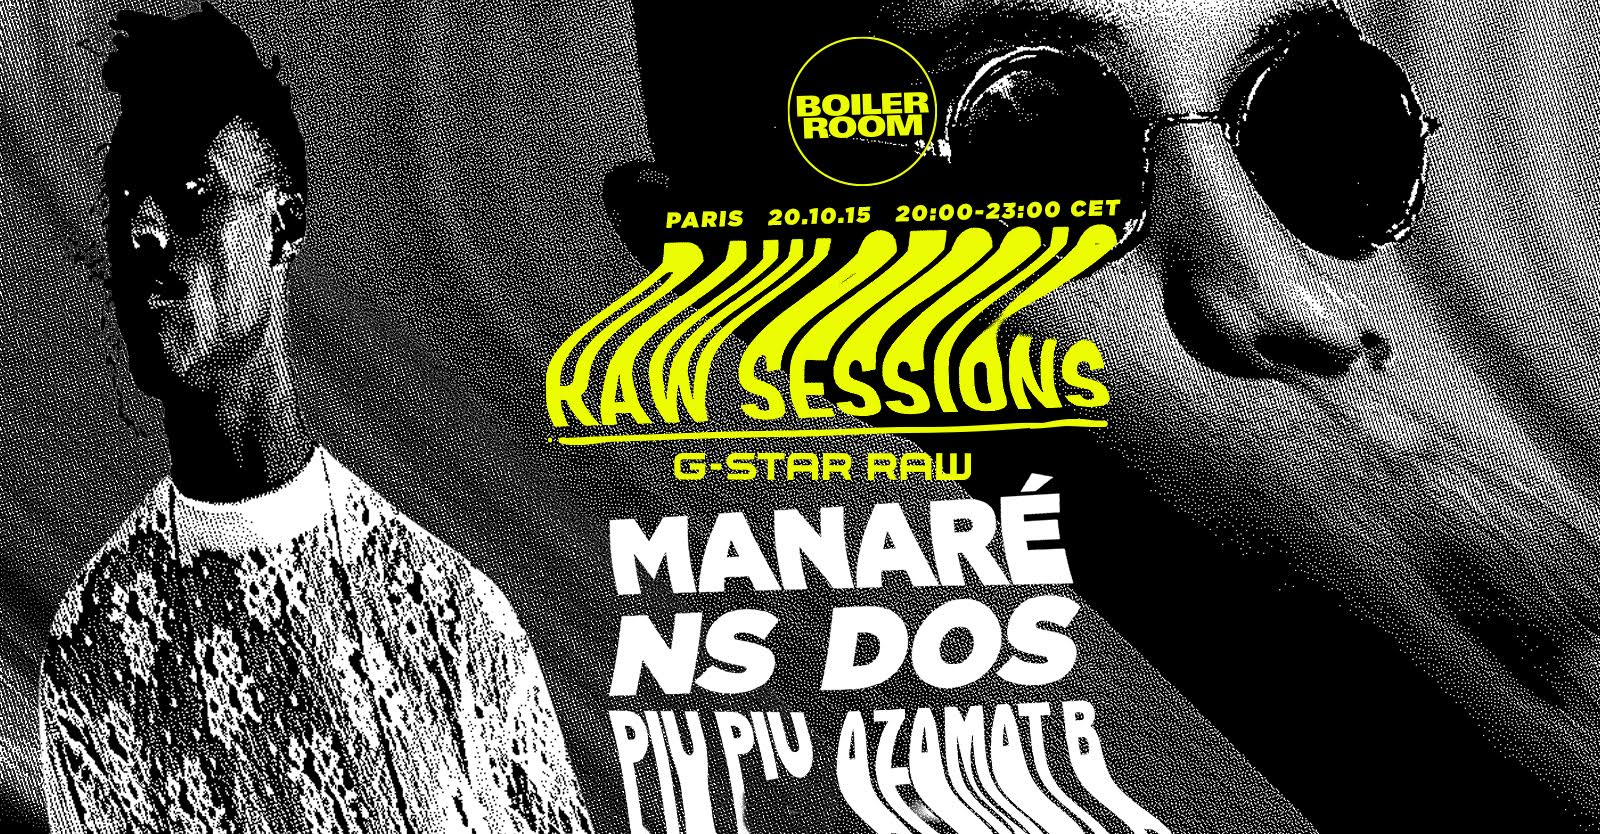 G-STAR PRESENTS THE BOILER ROOM RAW SESSIONS